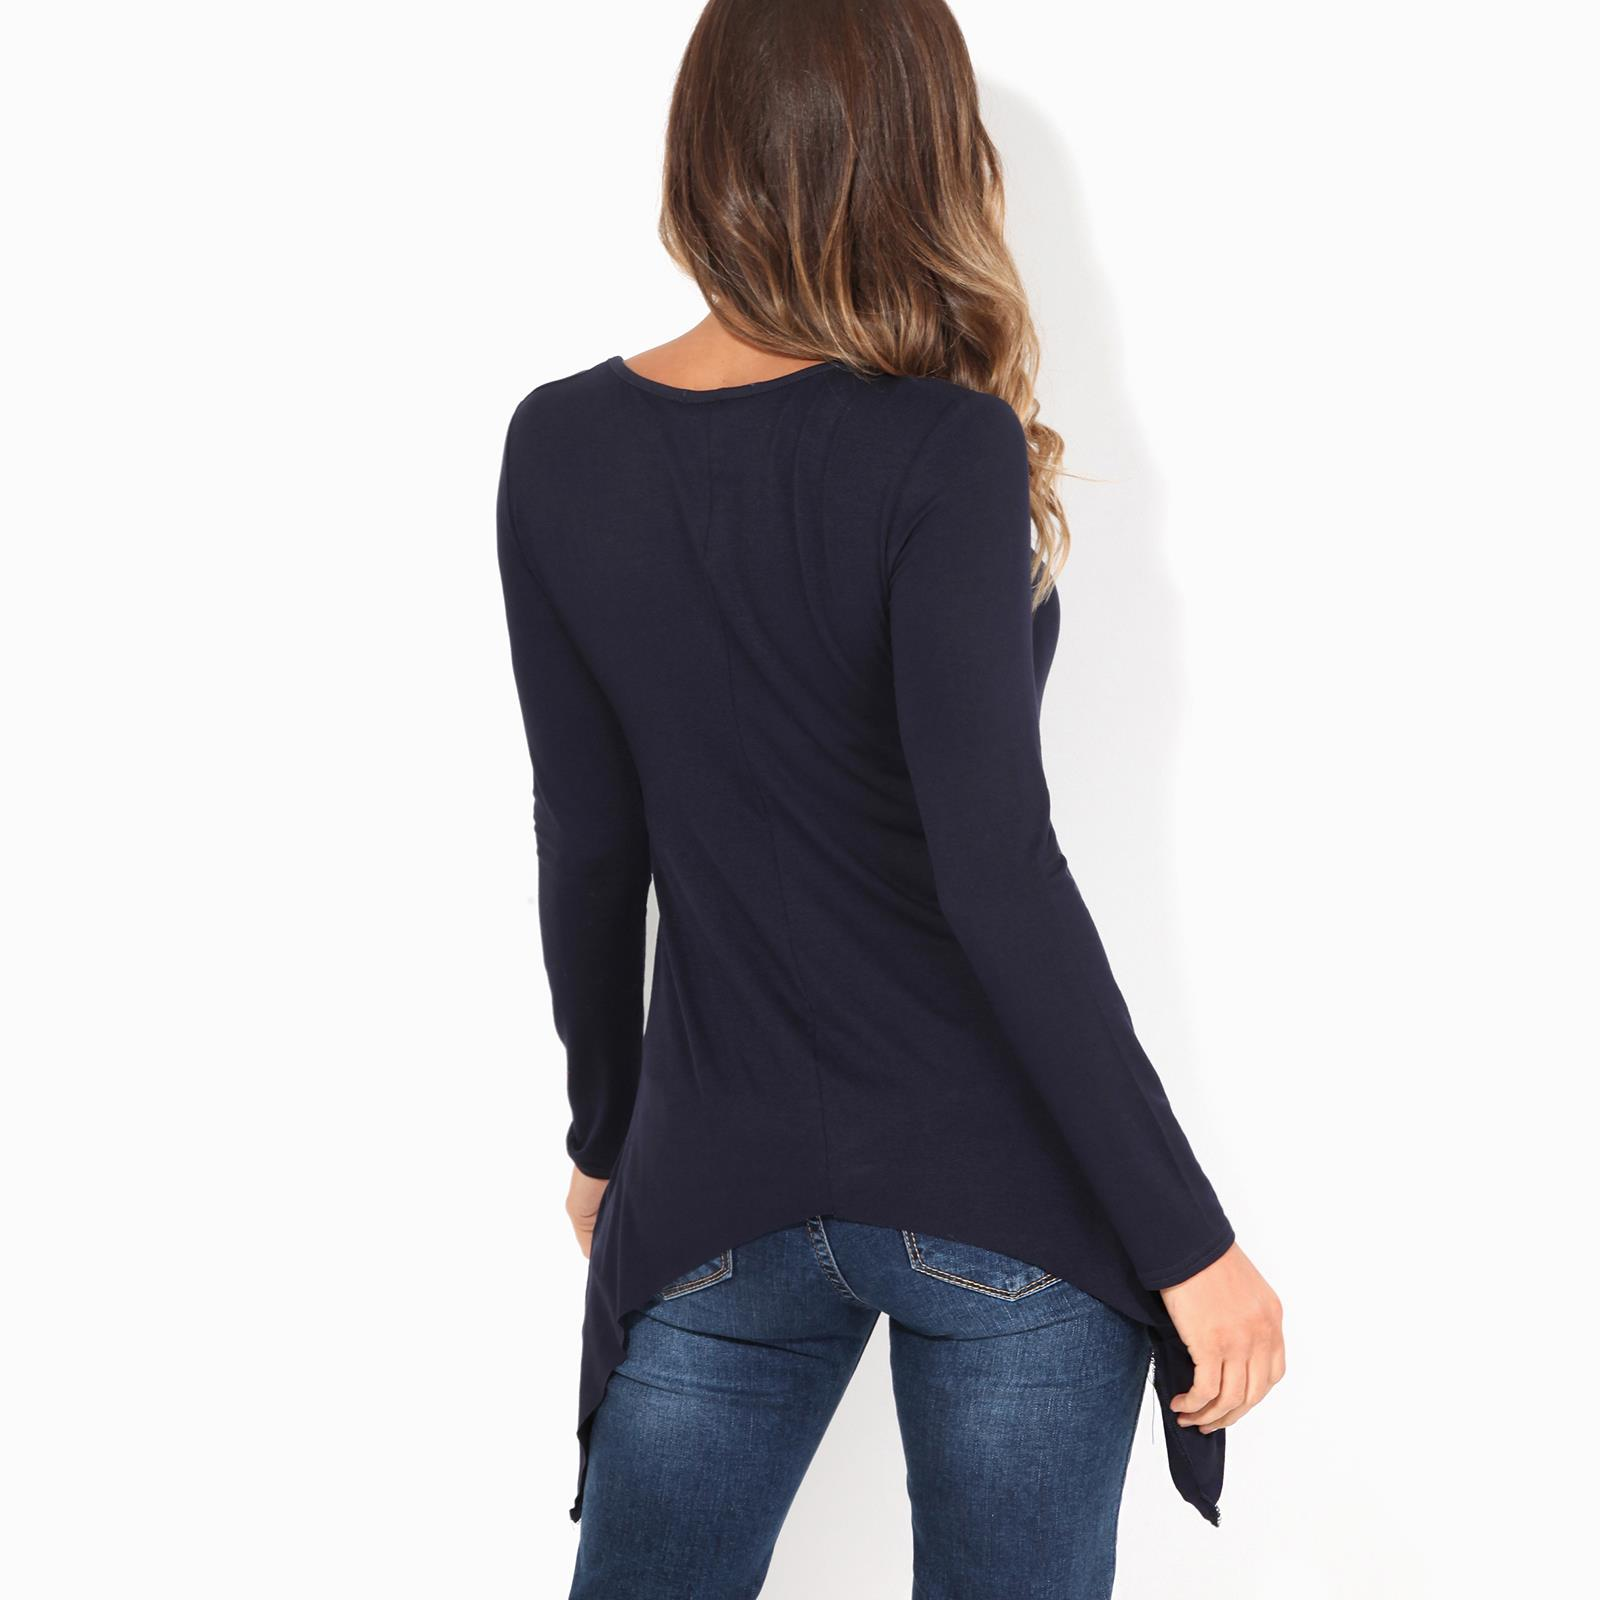 Womens-Ladies-Scoop-Neck-Blouse-Longline-T-Shirt-Flared-Top-Pleated-Long-Sleeve thumbnail 7